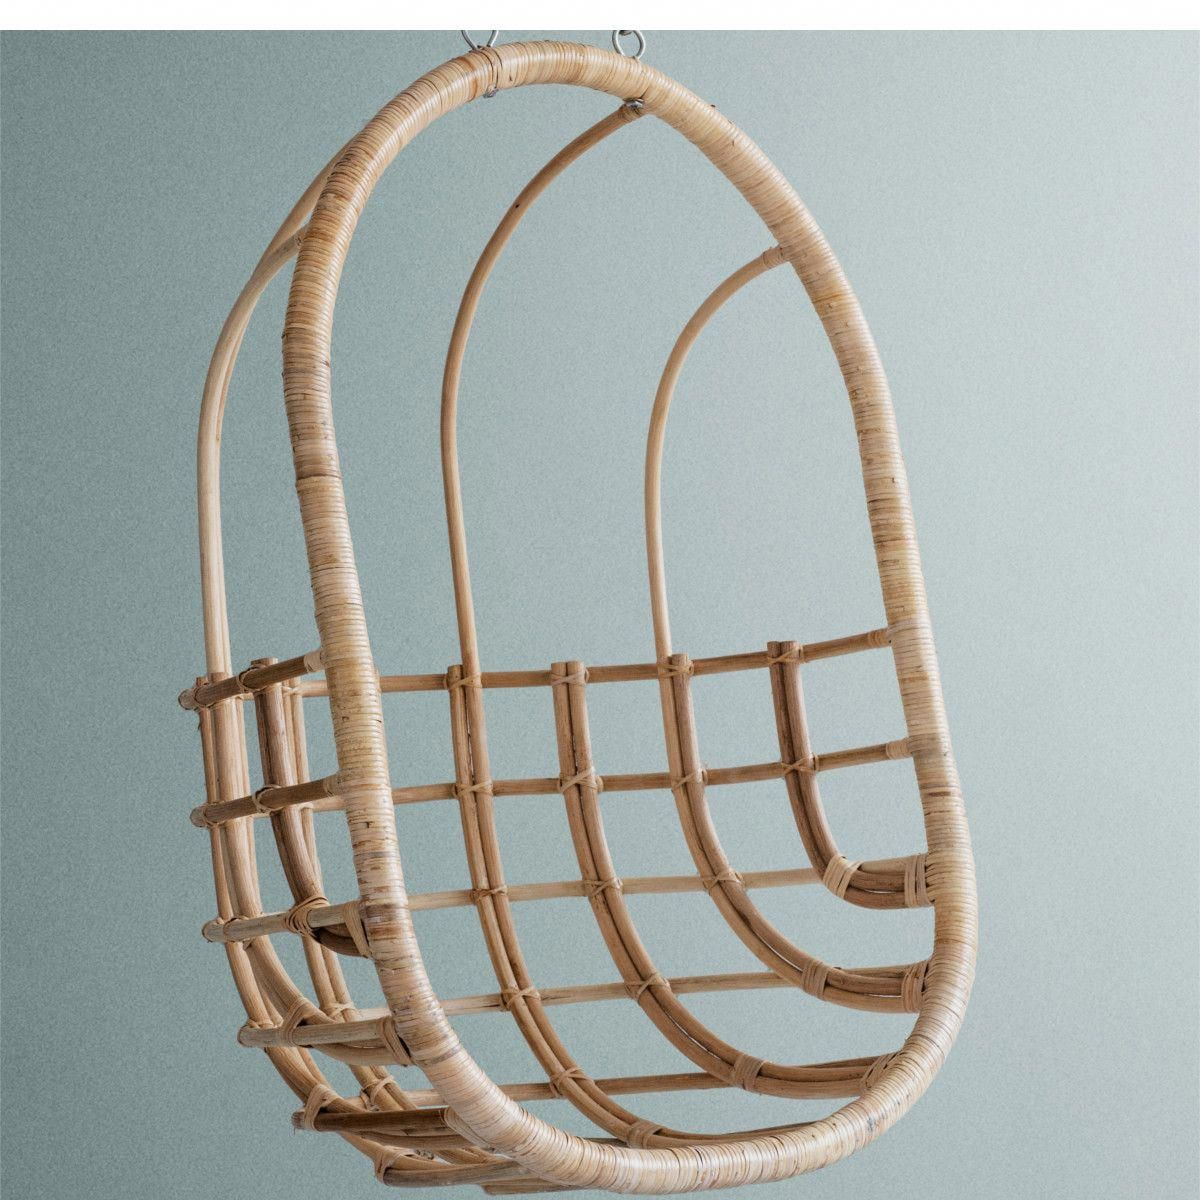 Egg Chairs That Hang From The Ceiling Hanging Chair From Ceiling Egg Chairs In 2019 Rattan Egg Chair